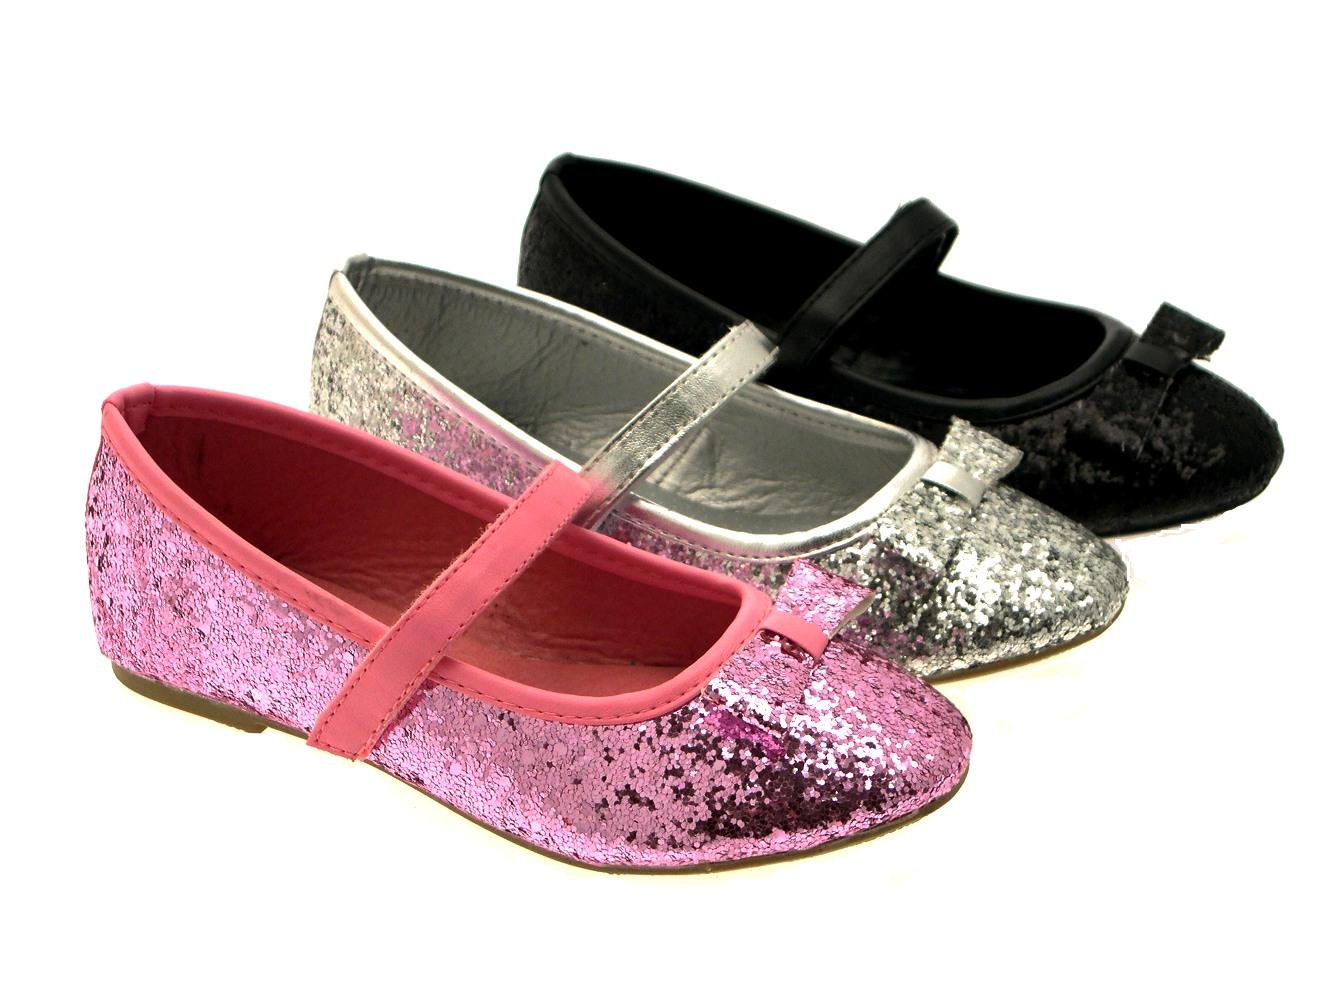 GIRLS-KIDS-CHILDRENS-GLITTER-BALLET-PUMPS-XMAS-PARTY-MARY-JANE-SHOES-SIZE-6-12